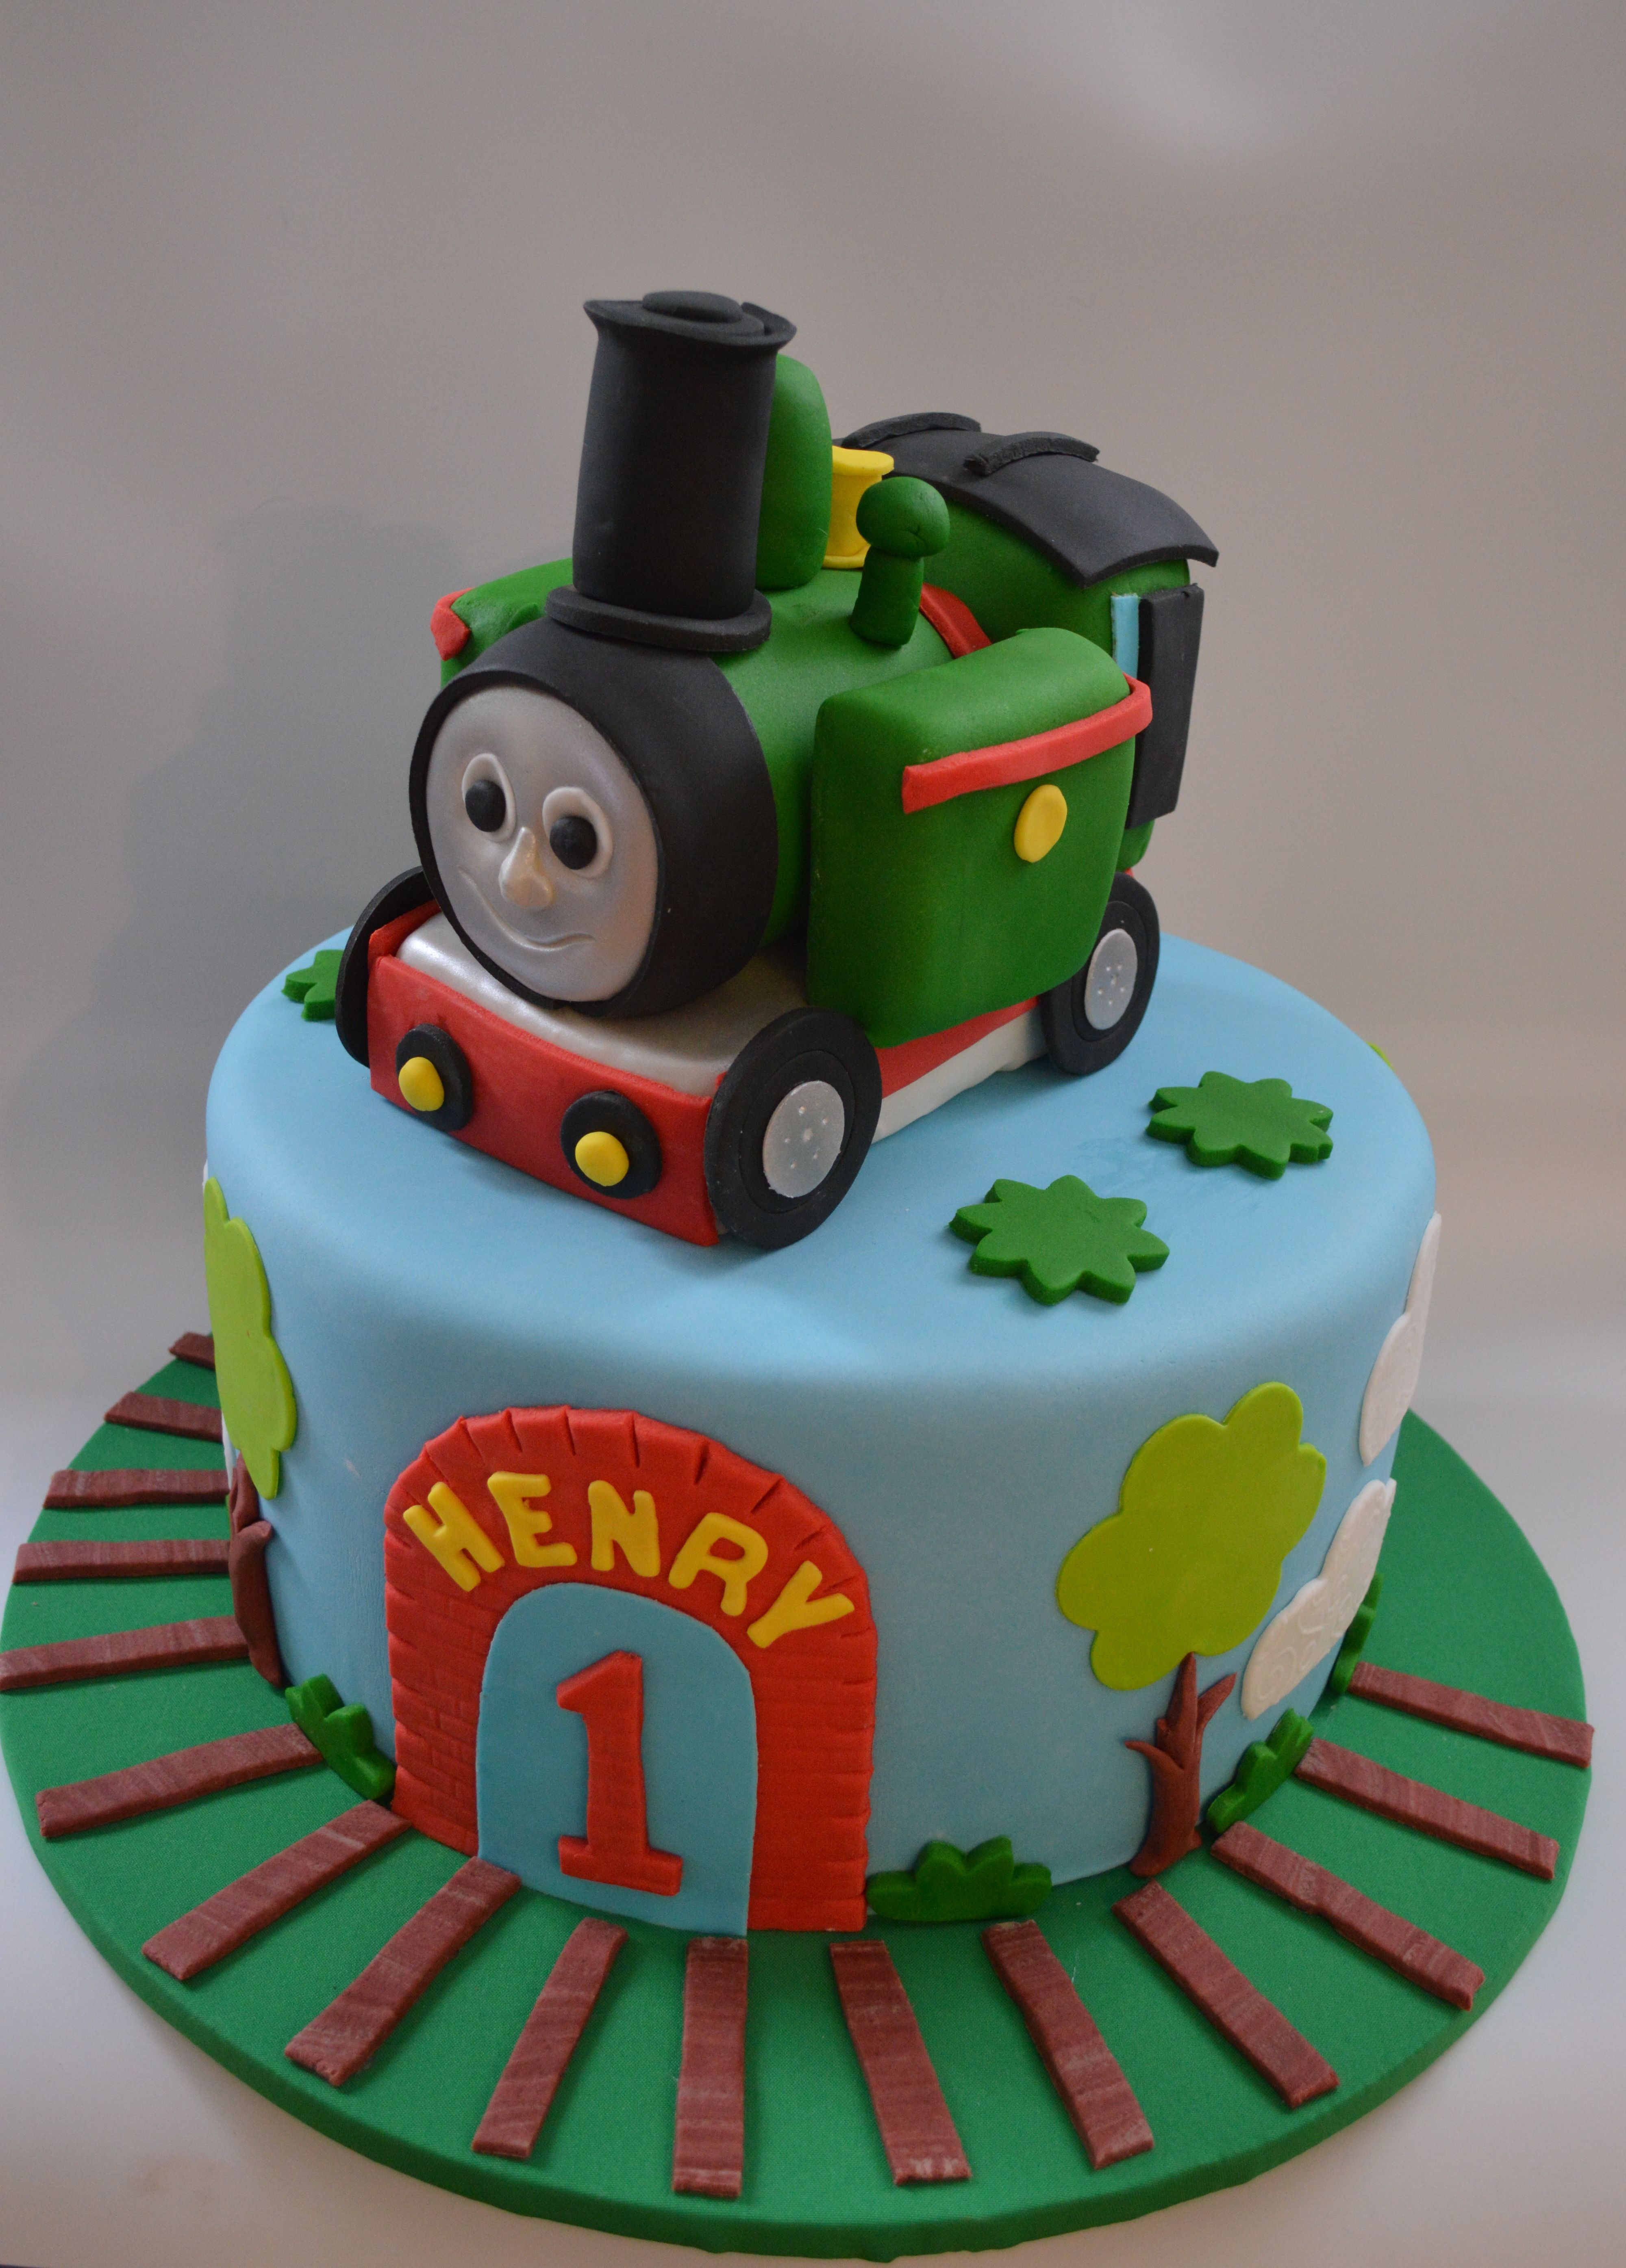 Strange Henry Train Cake With Images First Birthday Cakes Train Cake Birthday Cards Printable Benkemecafe Filternl